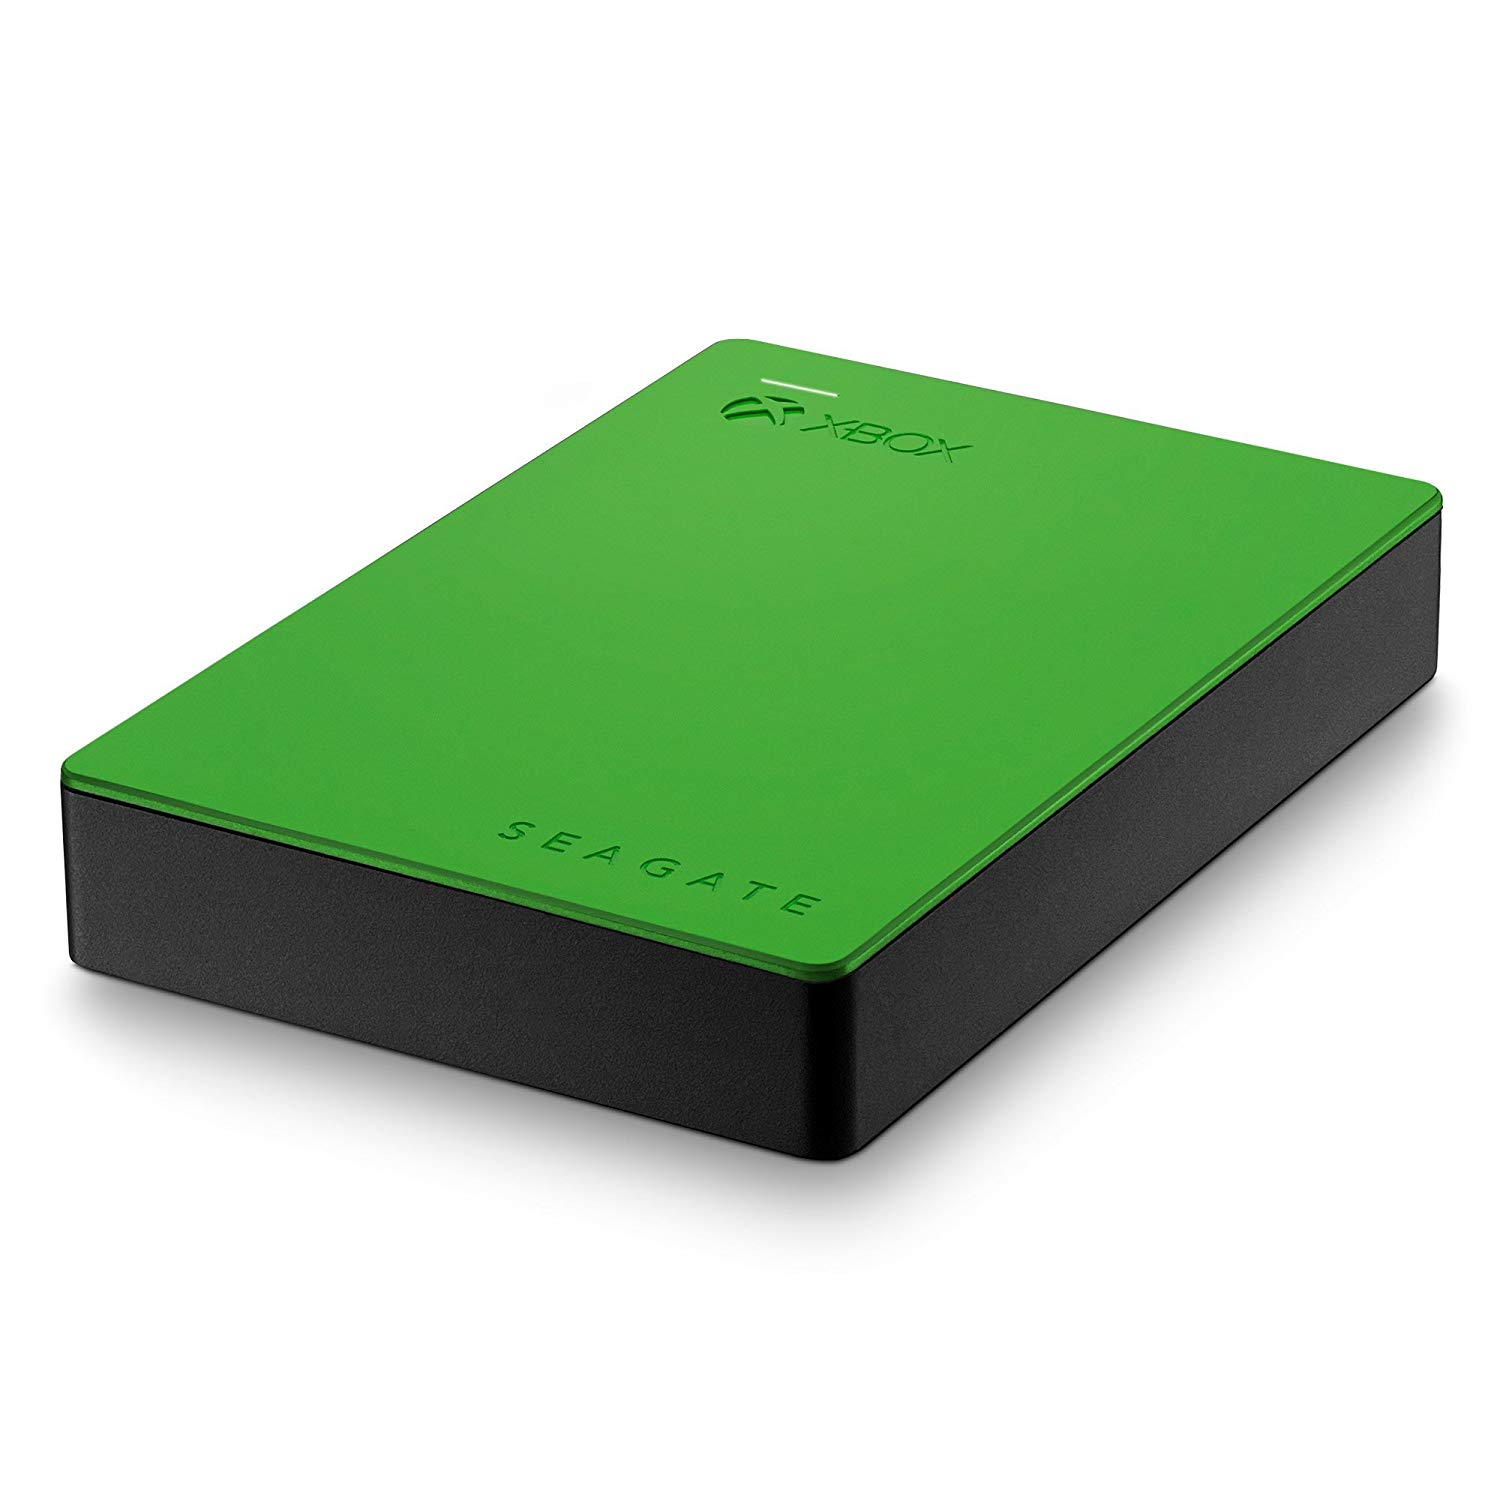 Seagate 4 TB Game Drive for Xbox, USB 3.0 Portable 2.5 Inch External Hard Drive for Xbox One